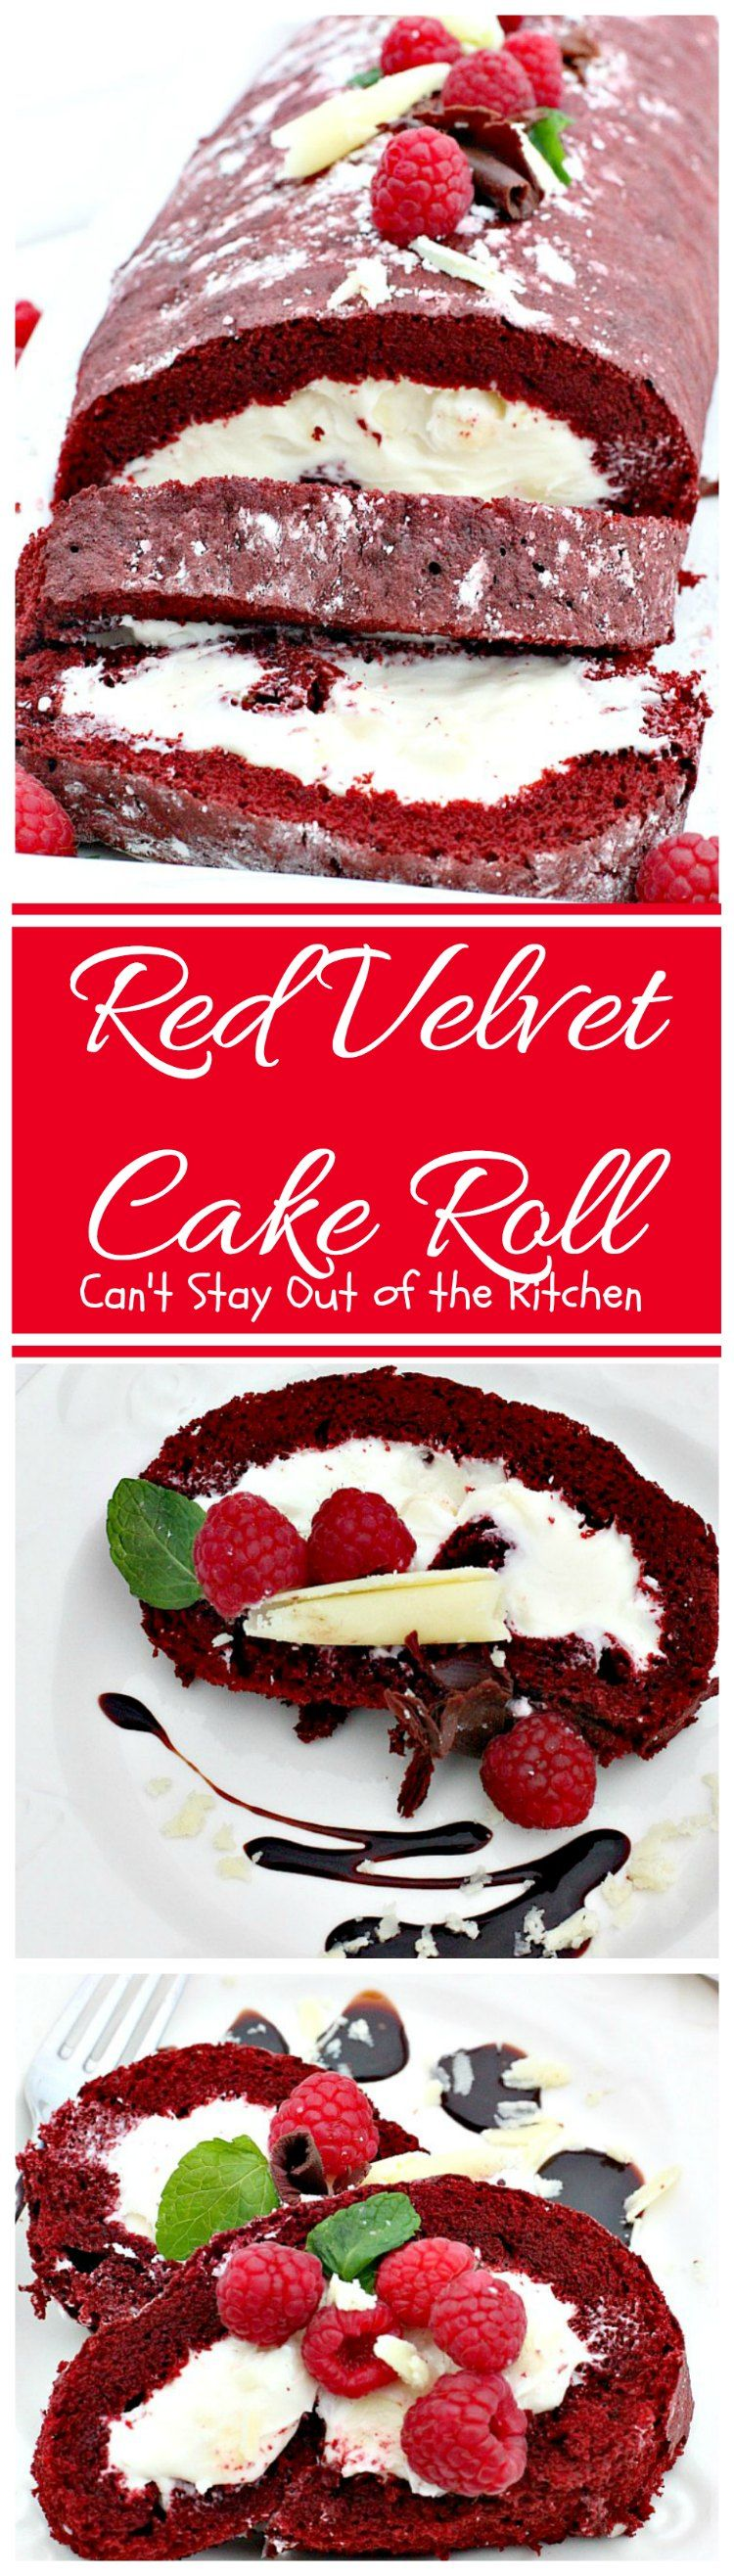 Red Velvet Cake Roll #redvelvetcheesecake